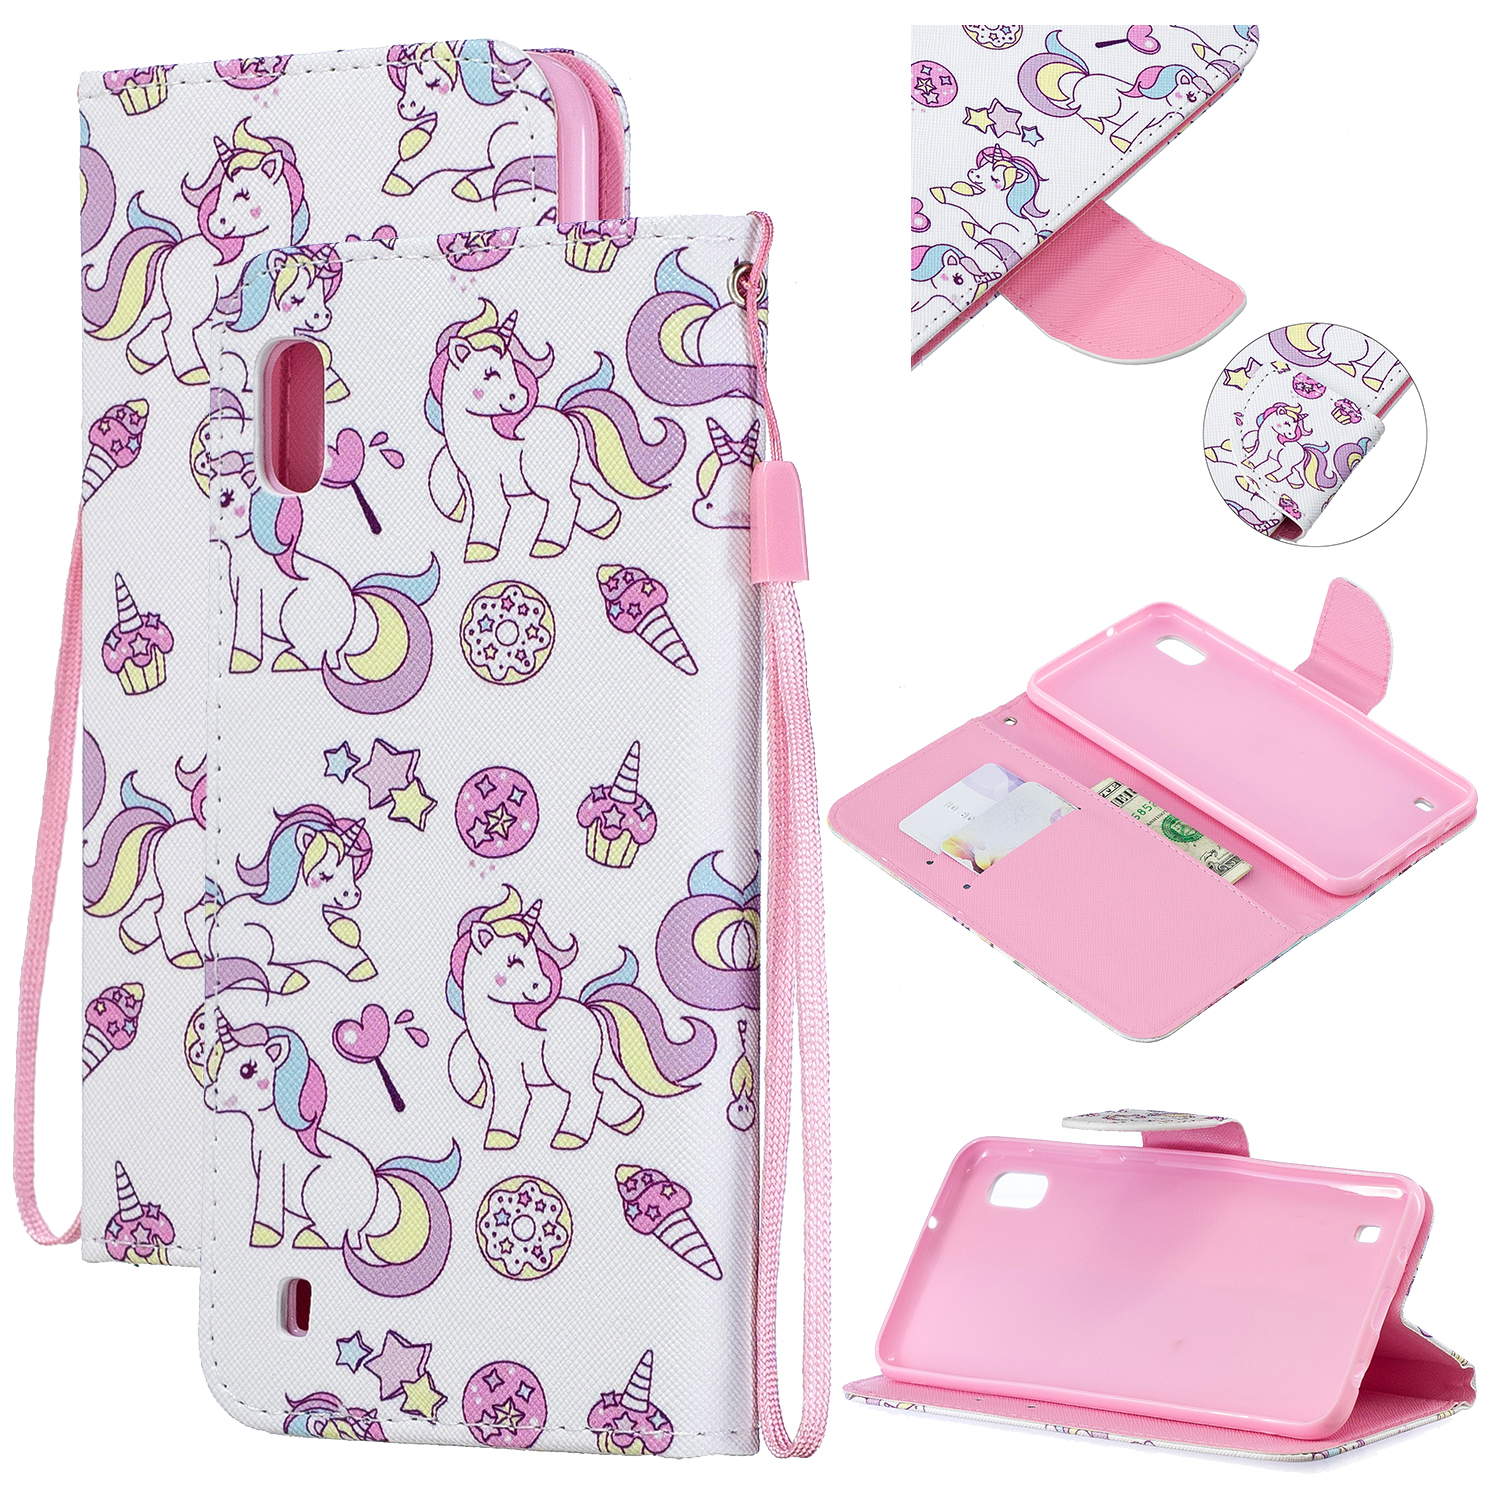 For Samsung A10/A20/A30 Smartphone Case PU Leather Wallet Design Cellphone Cover with Card Holder Stand Available Ice cream unicorn